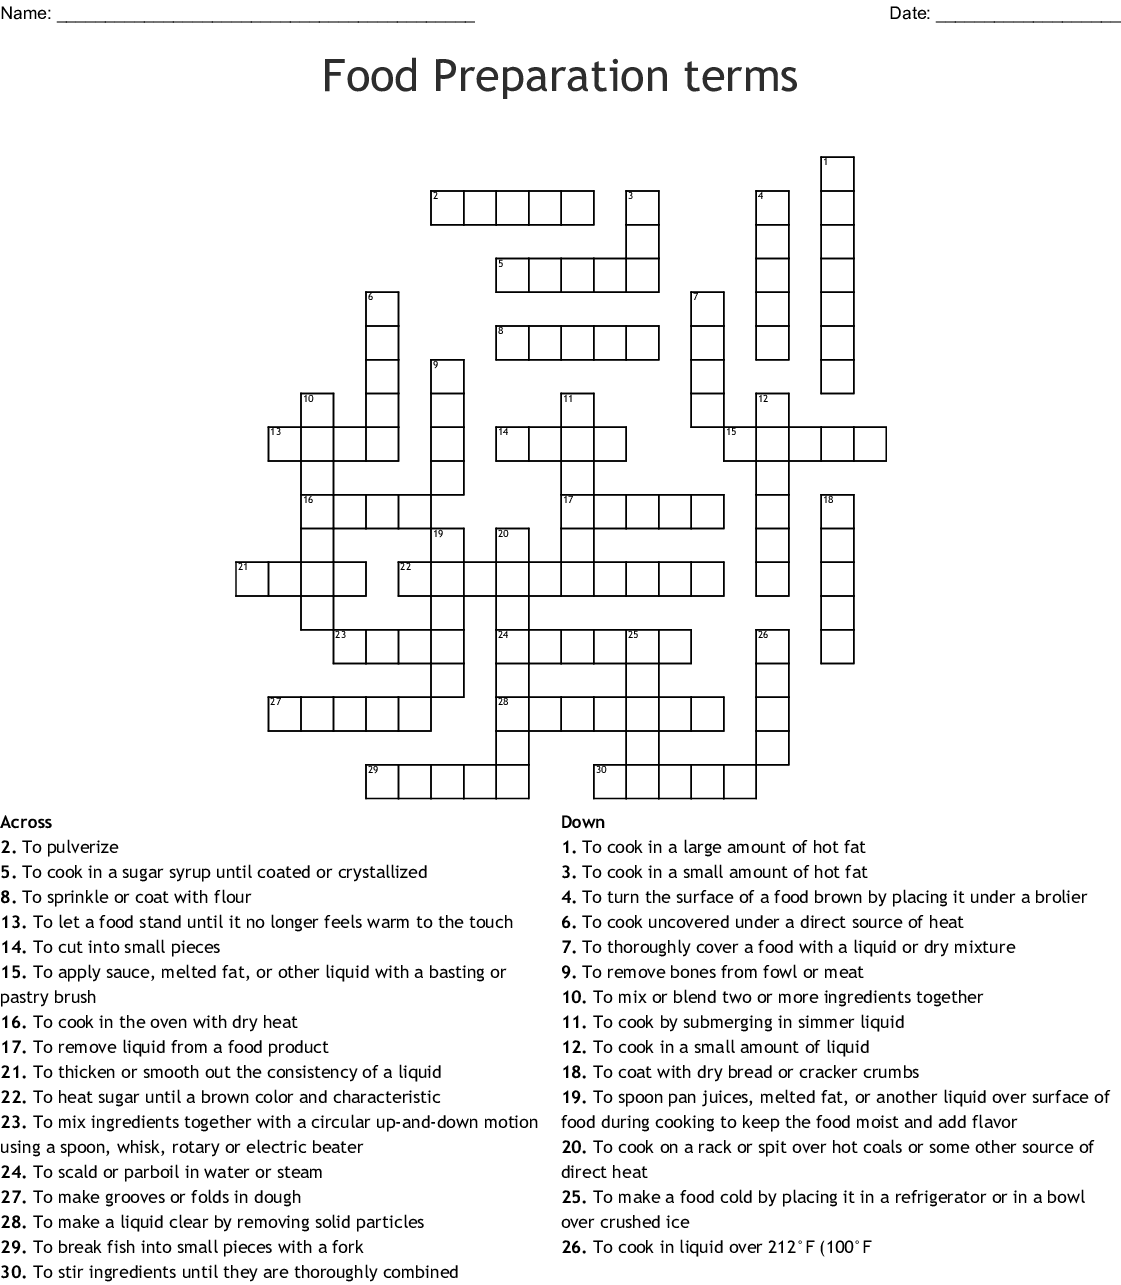 Food Preparation Terms Crossword Answers